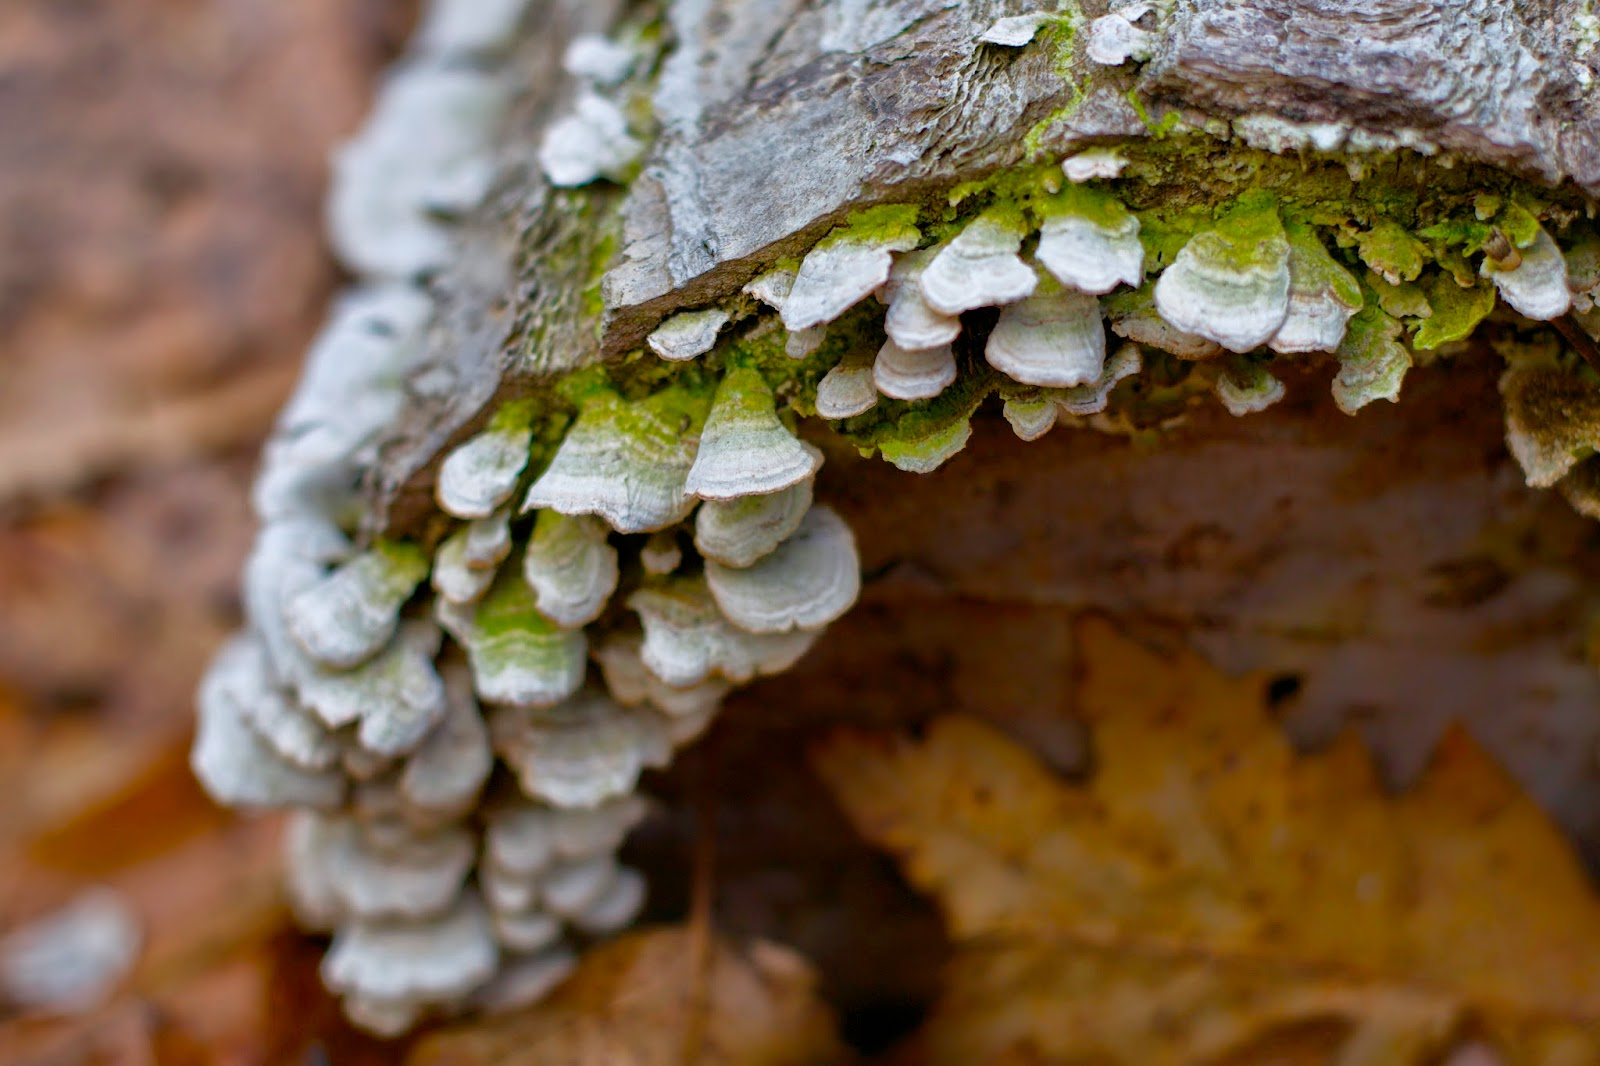 Old turkey tail mushrooms on a log.